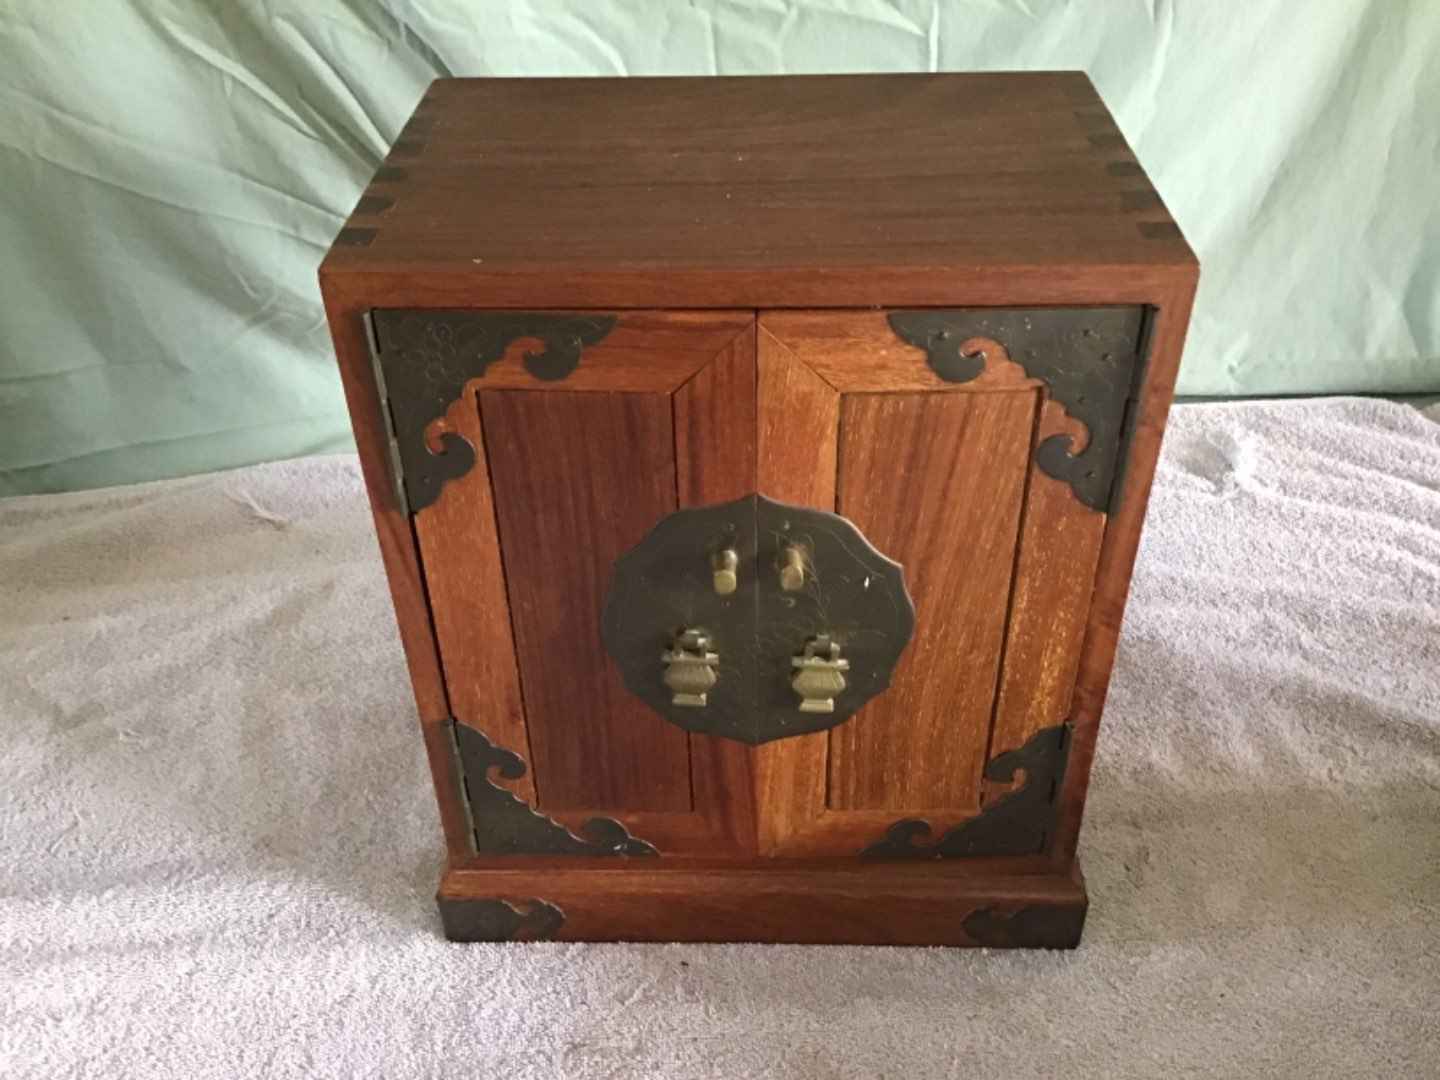 Lot # 243 Gorgeous Walnut Heavy Jewelry Box - Very Well Constructed w/Dovetails & Brass Corner Pieces